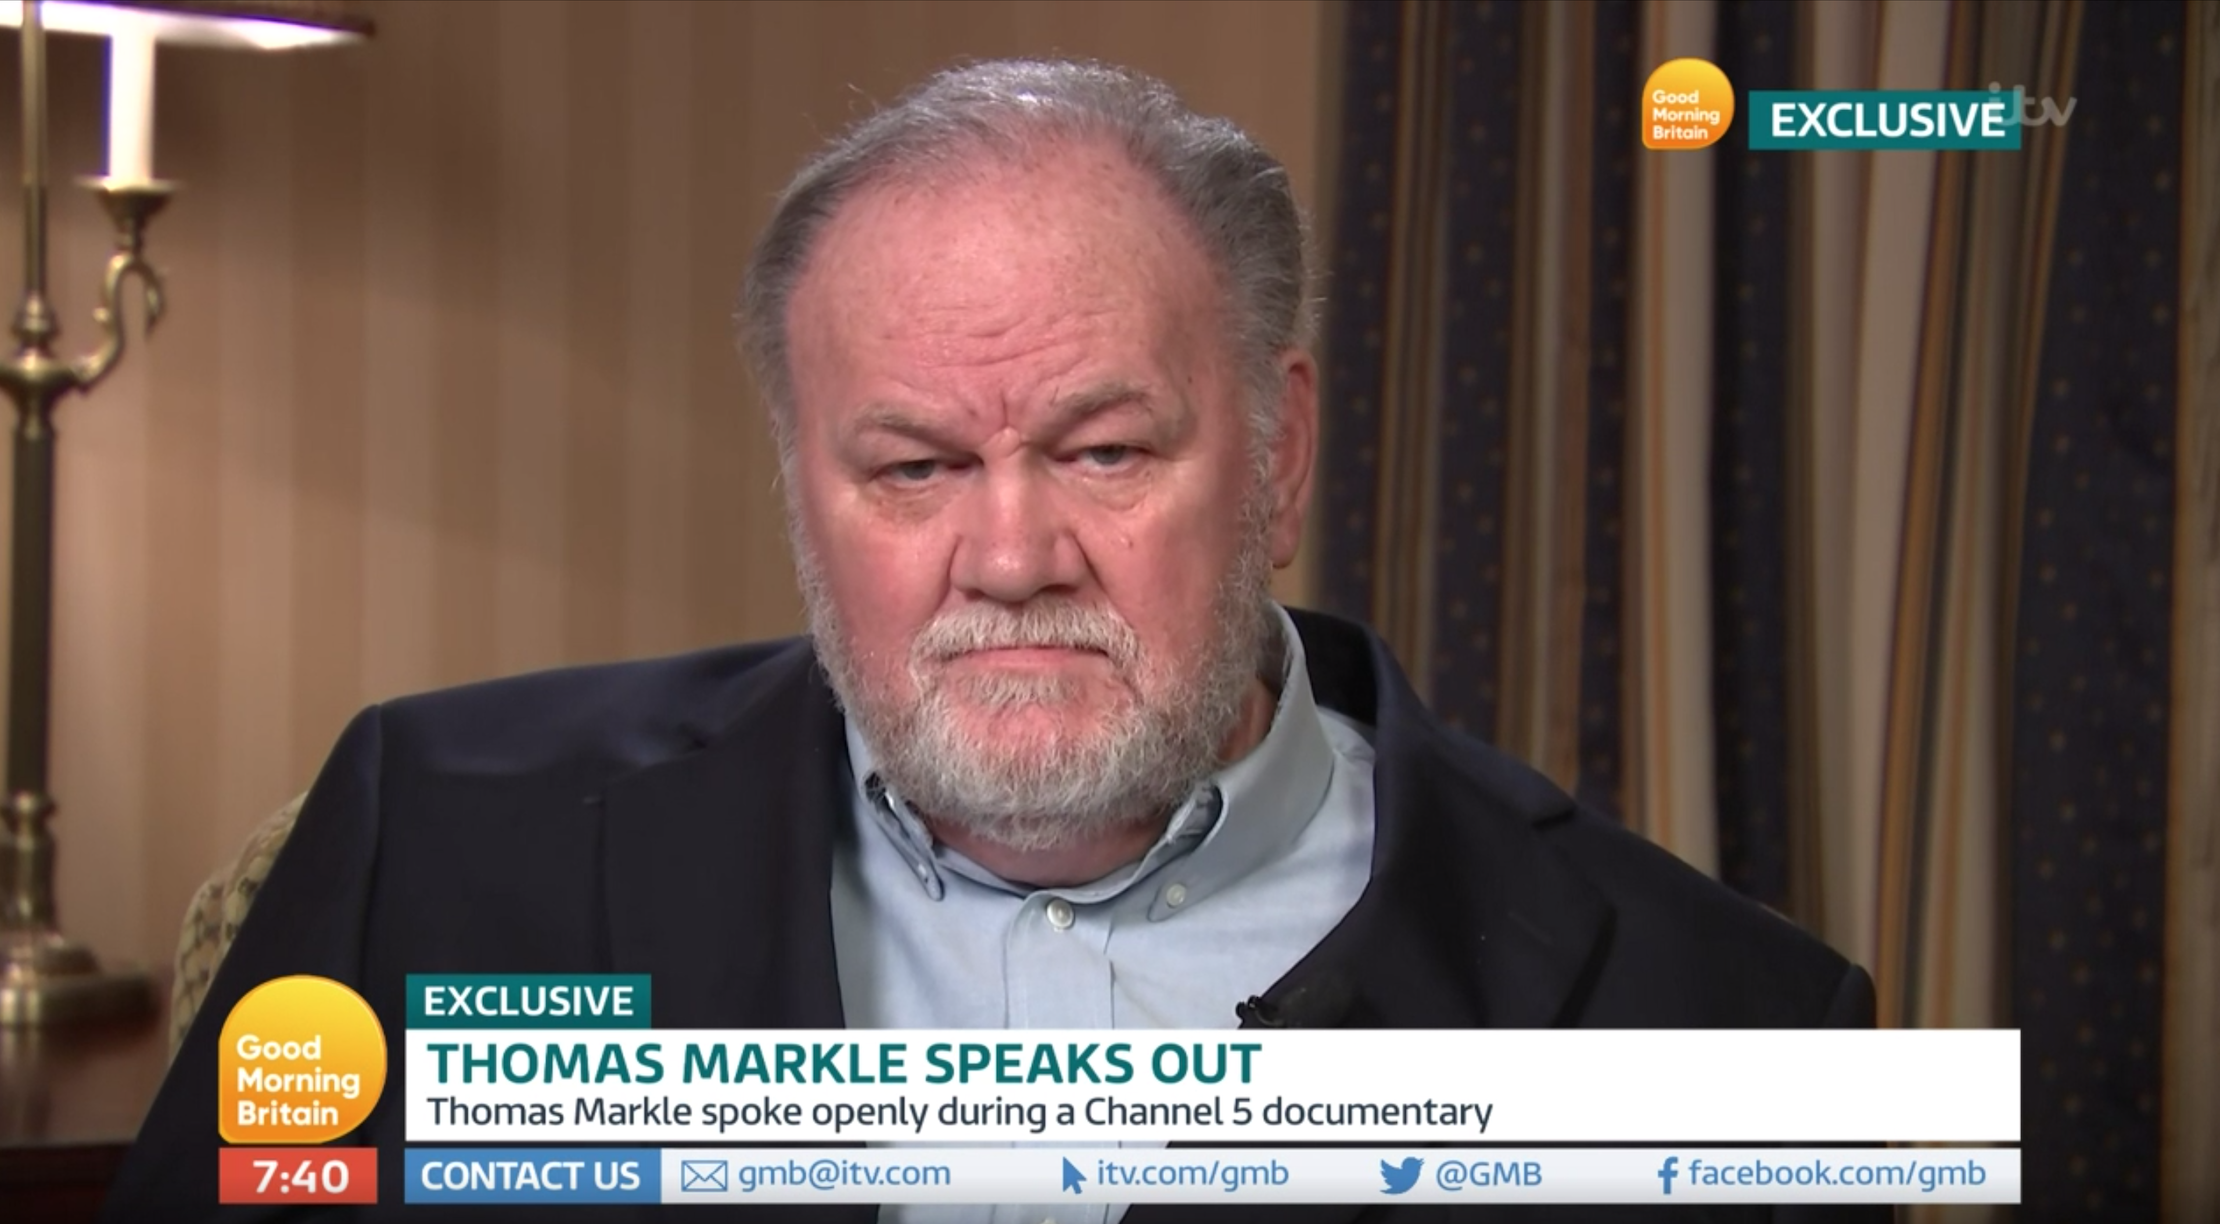 Thomas Markle urges Prince Harry to 'man up and see him' as he slams him and Meghan for 'hurting the Queen'